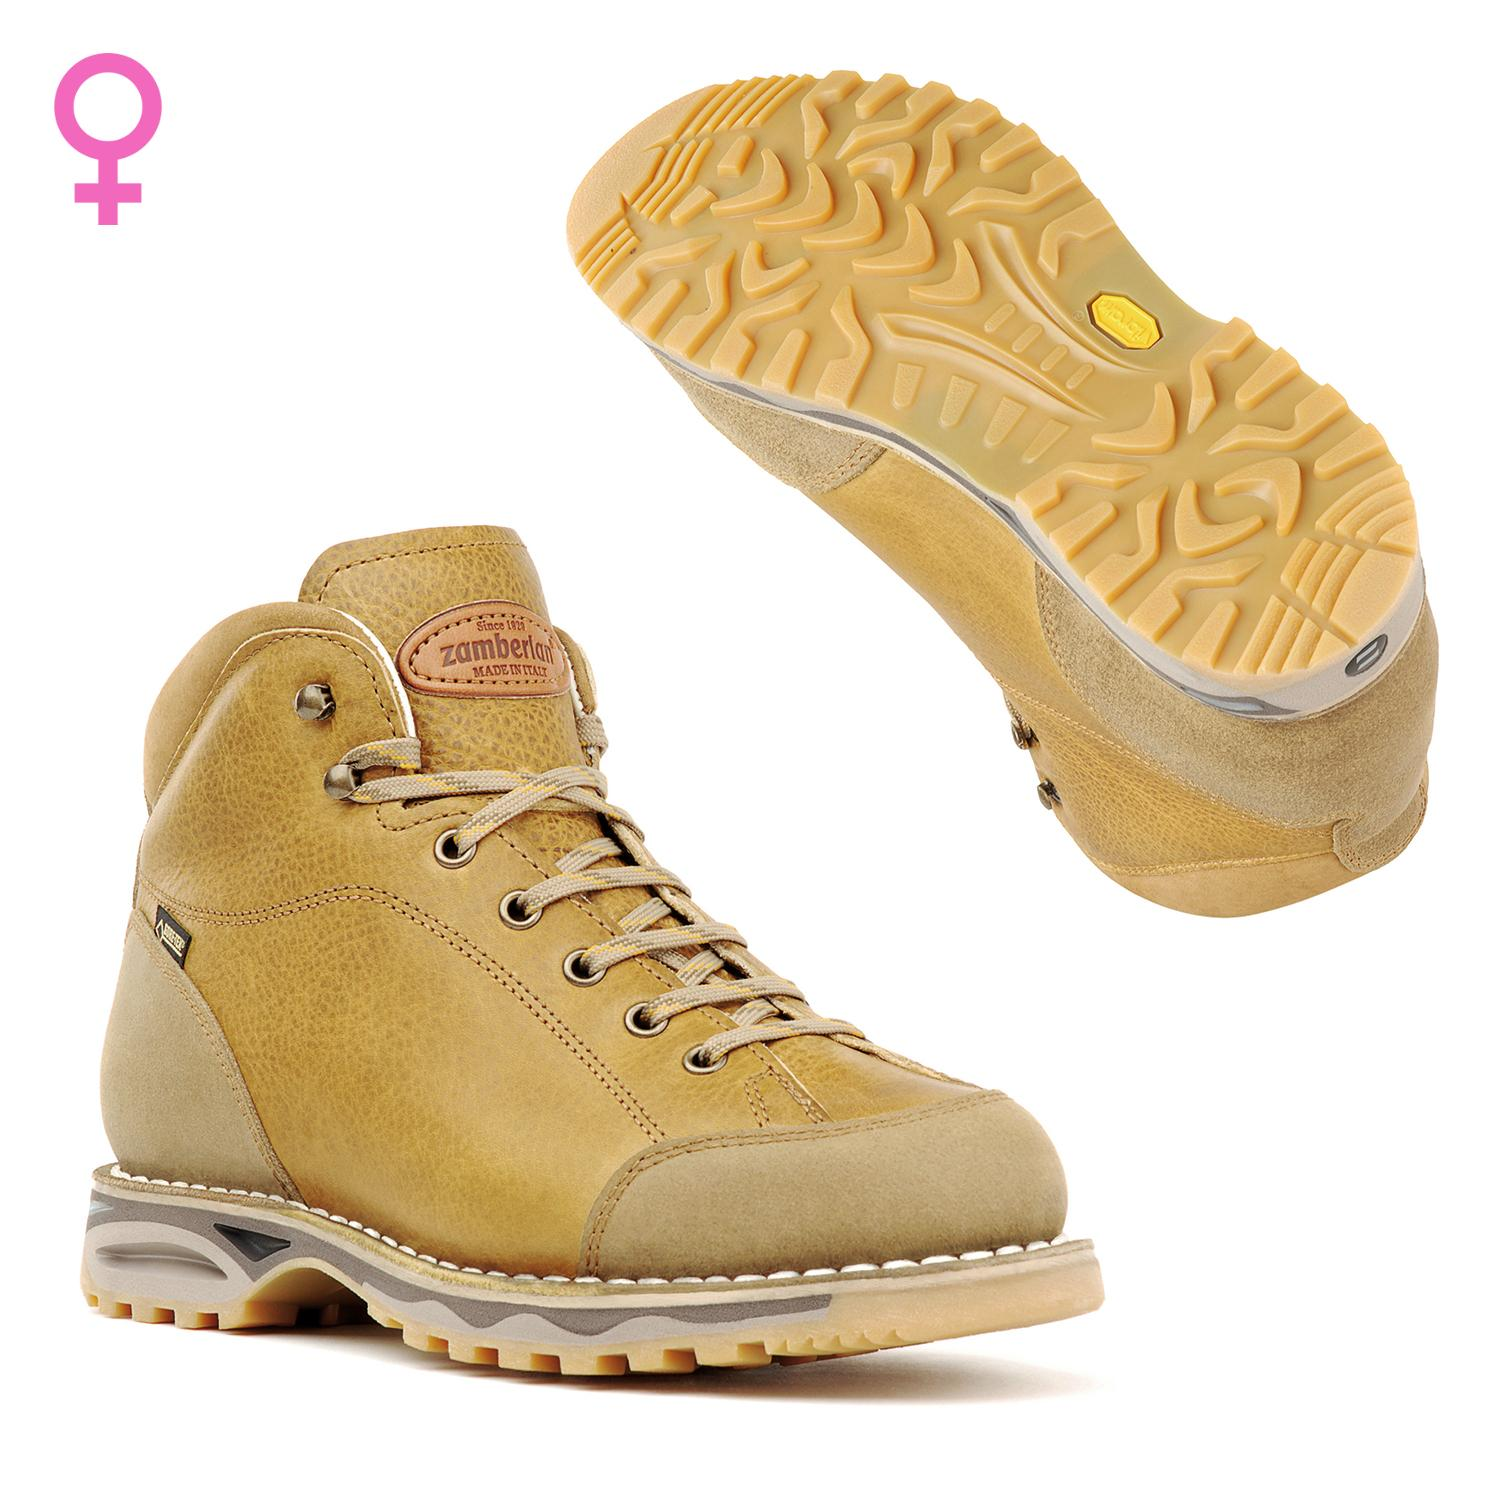 1031 SOLDA NW GTX WNS   -   Hiking  Boots   -   Sand